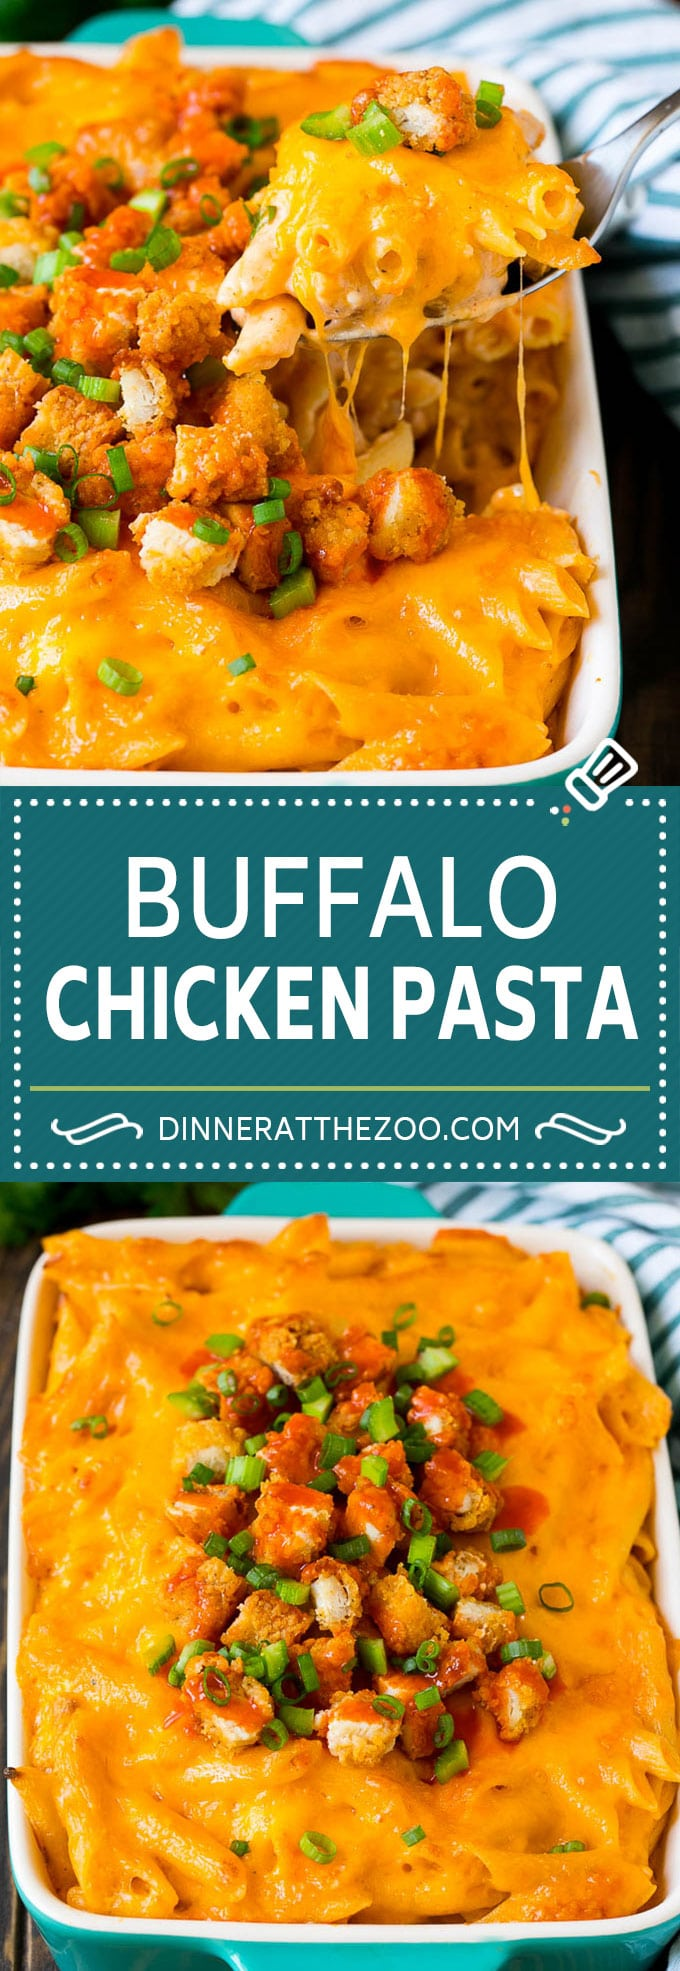 Buffalo Chicken Pasta Recipe | Baked Pasta #chicken #buffalochicken #pasta #cheese #dinner #dinneratthezoo